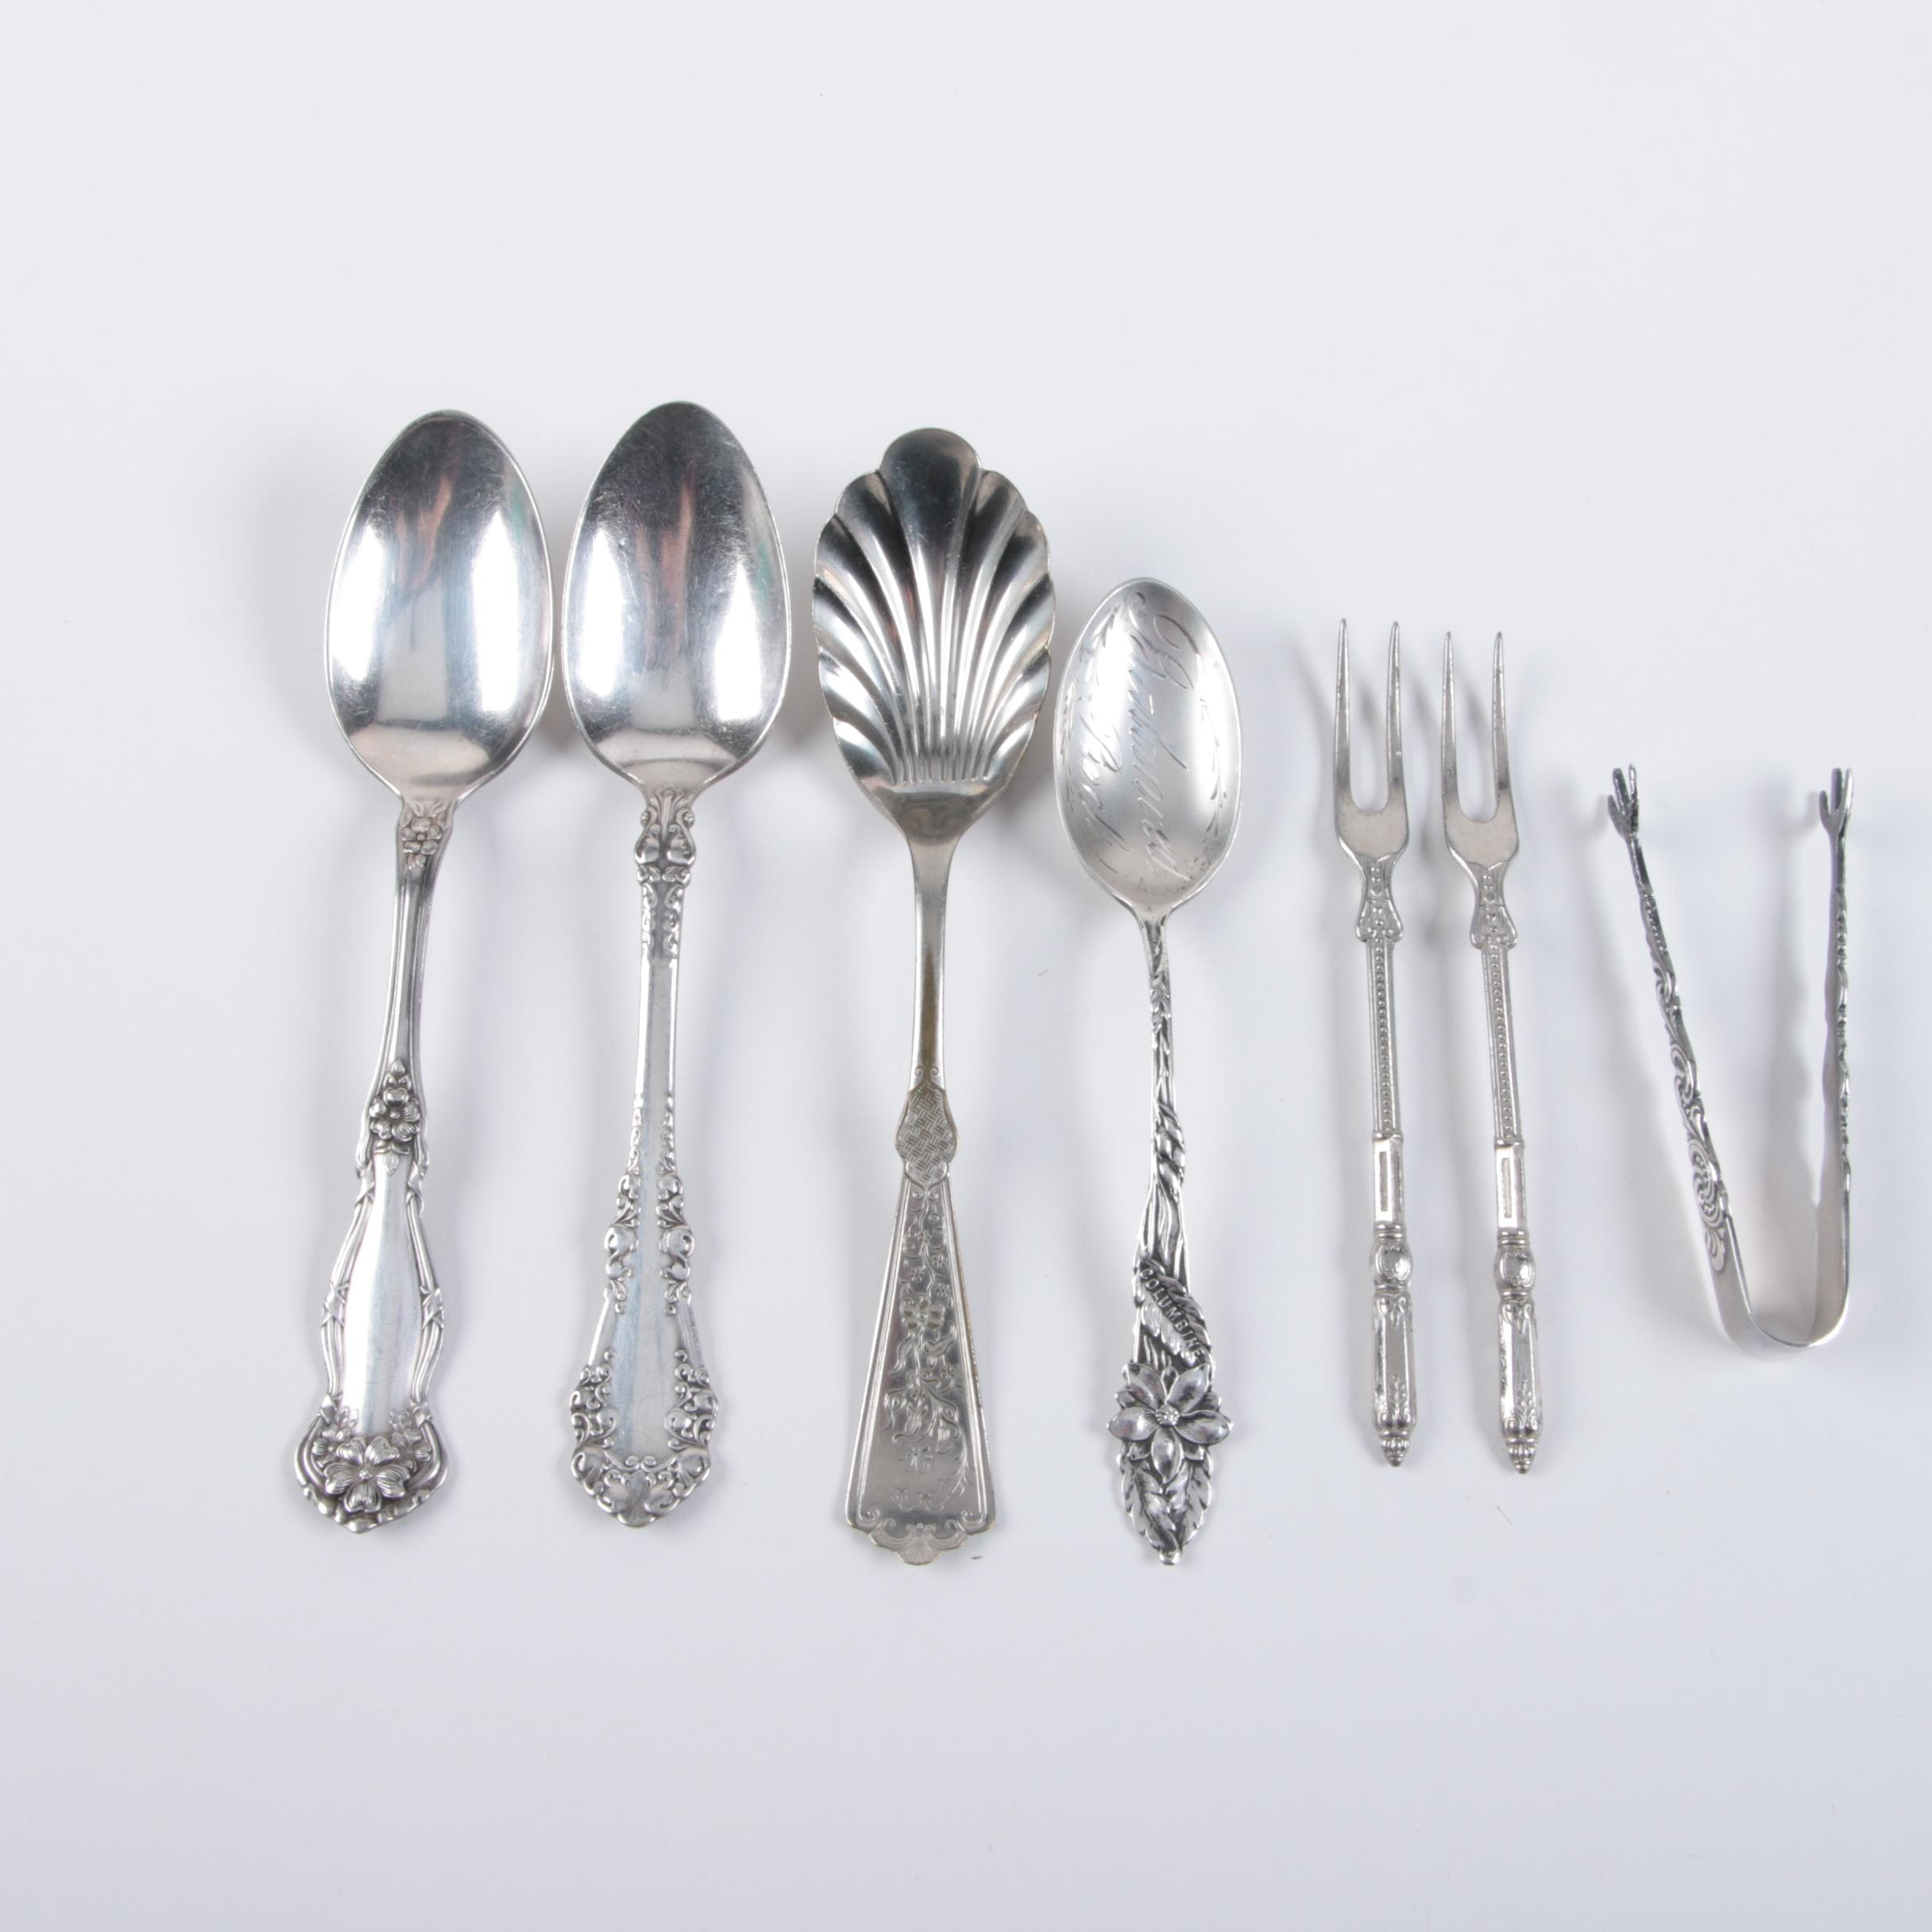 Silver-Plated Flatware with Sterling Silver Spoon